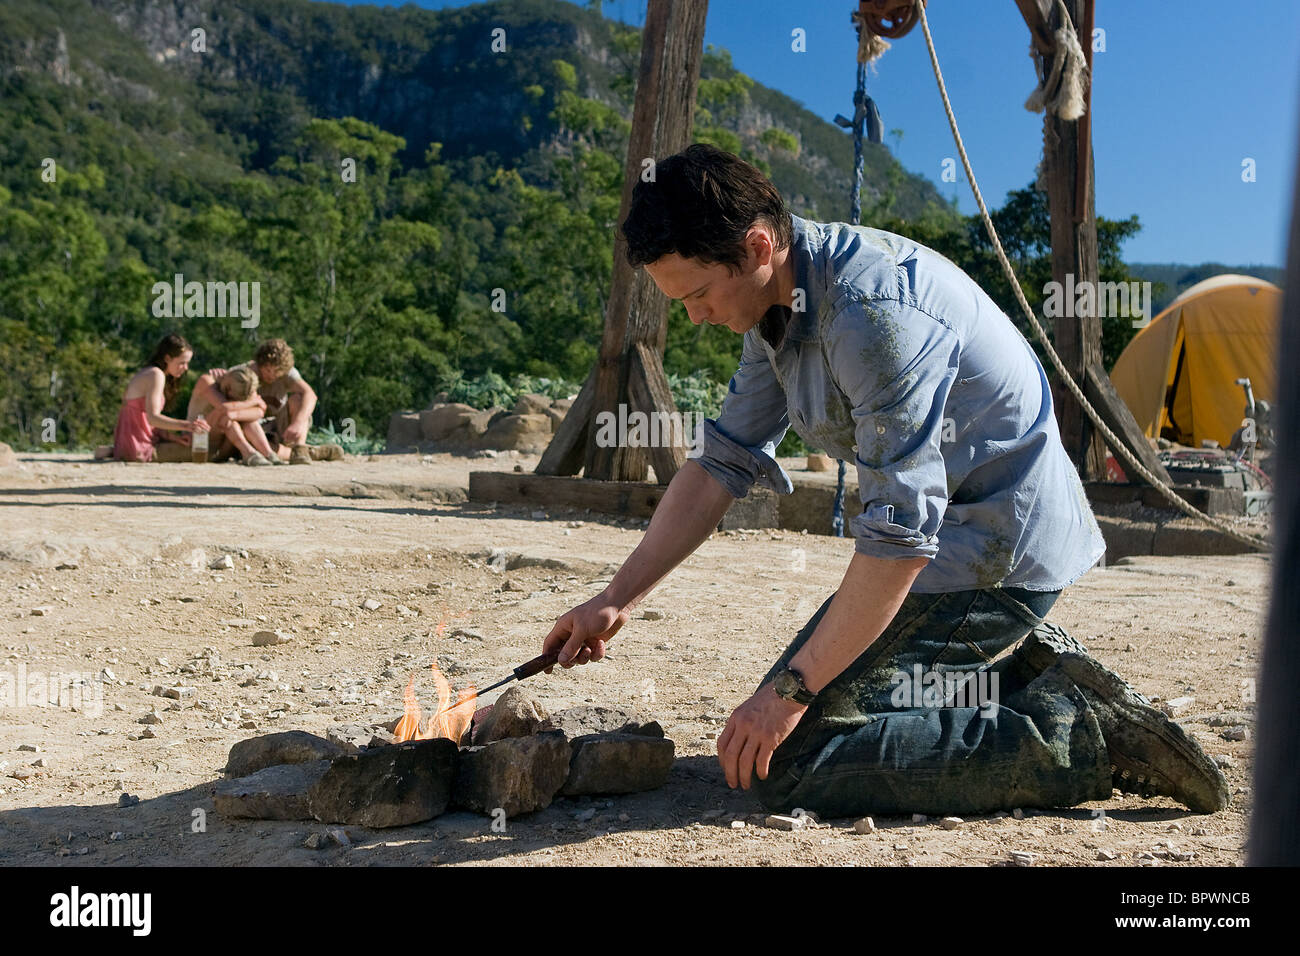 JONATHAN TUCKER THE RUINS (2008) - Stock Image